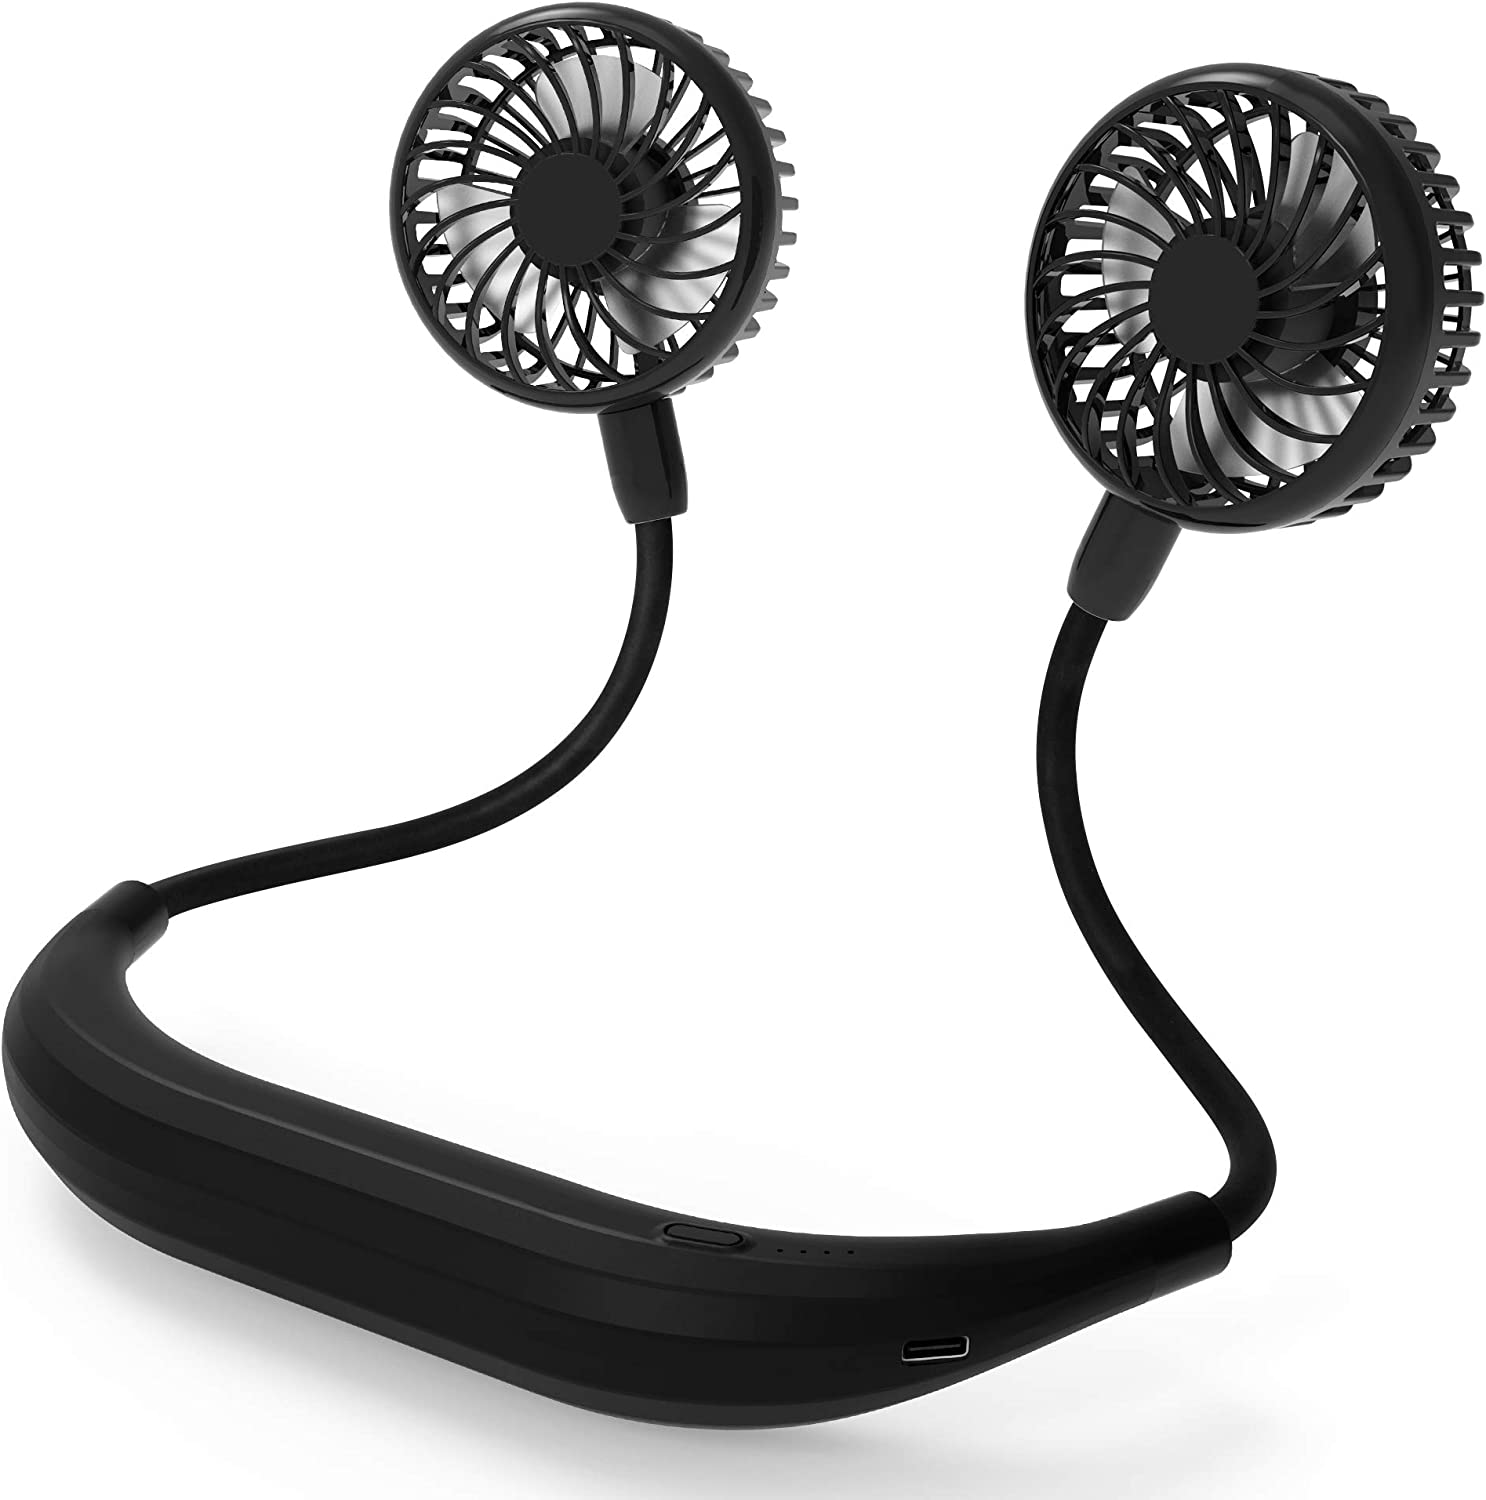 Neck Fan, 5200mAh Battery Powered Neckband Fan With 4 Speeds, Natural Wind Mode, 360° Adjustable, Hands-Free Portable Personal Fan for Sports, Home, Office, Trave (Black)